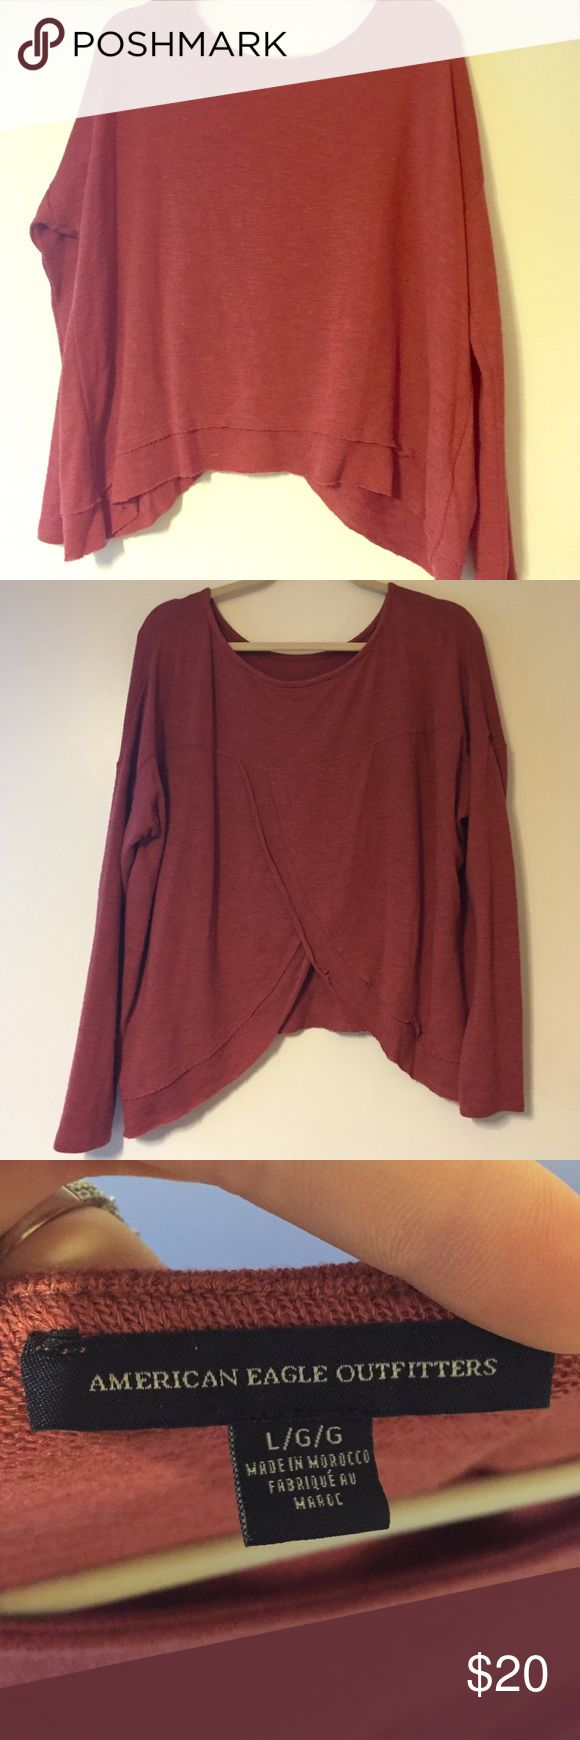 """Tulip back sweater NWOT. Worn once. Too small for me in perfect condition. The back is """"tulip cut"""" meaning it comes open some- very cute. Burnt red/rust color. American Eagle Outfitters Tops"""